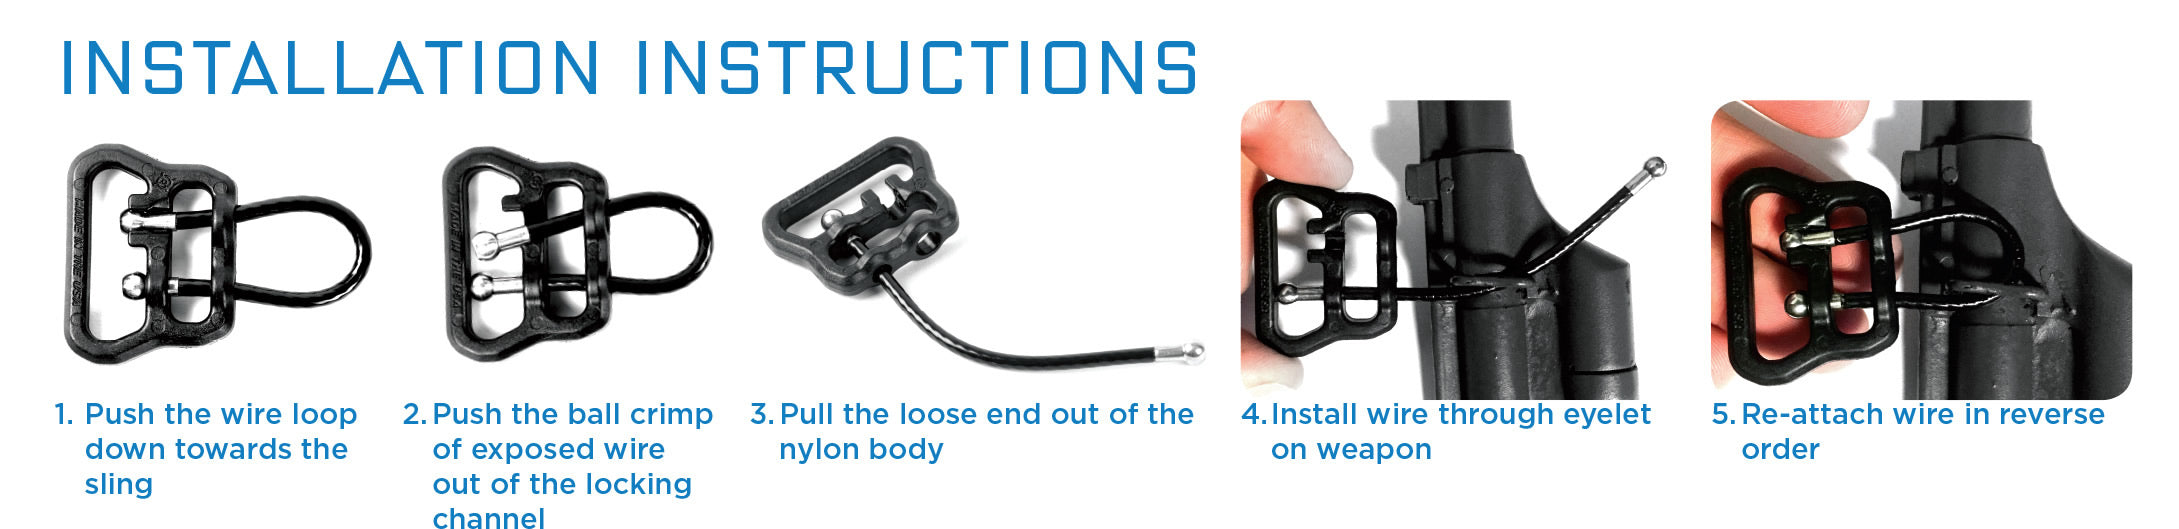 ULoop installation instructions